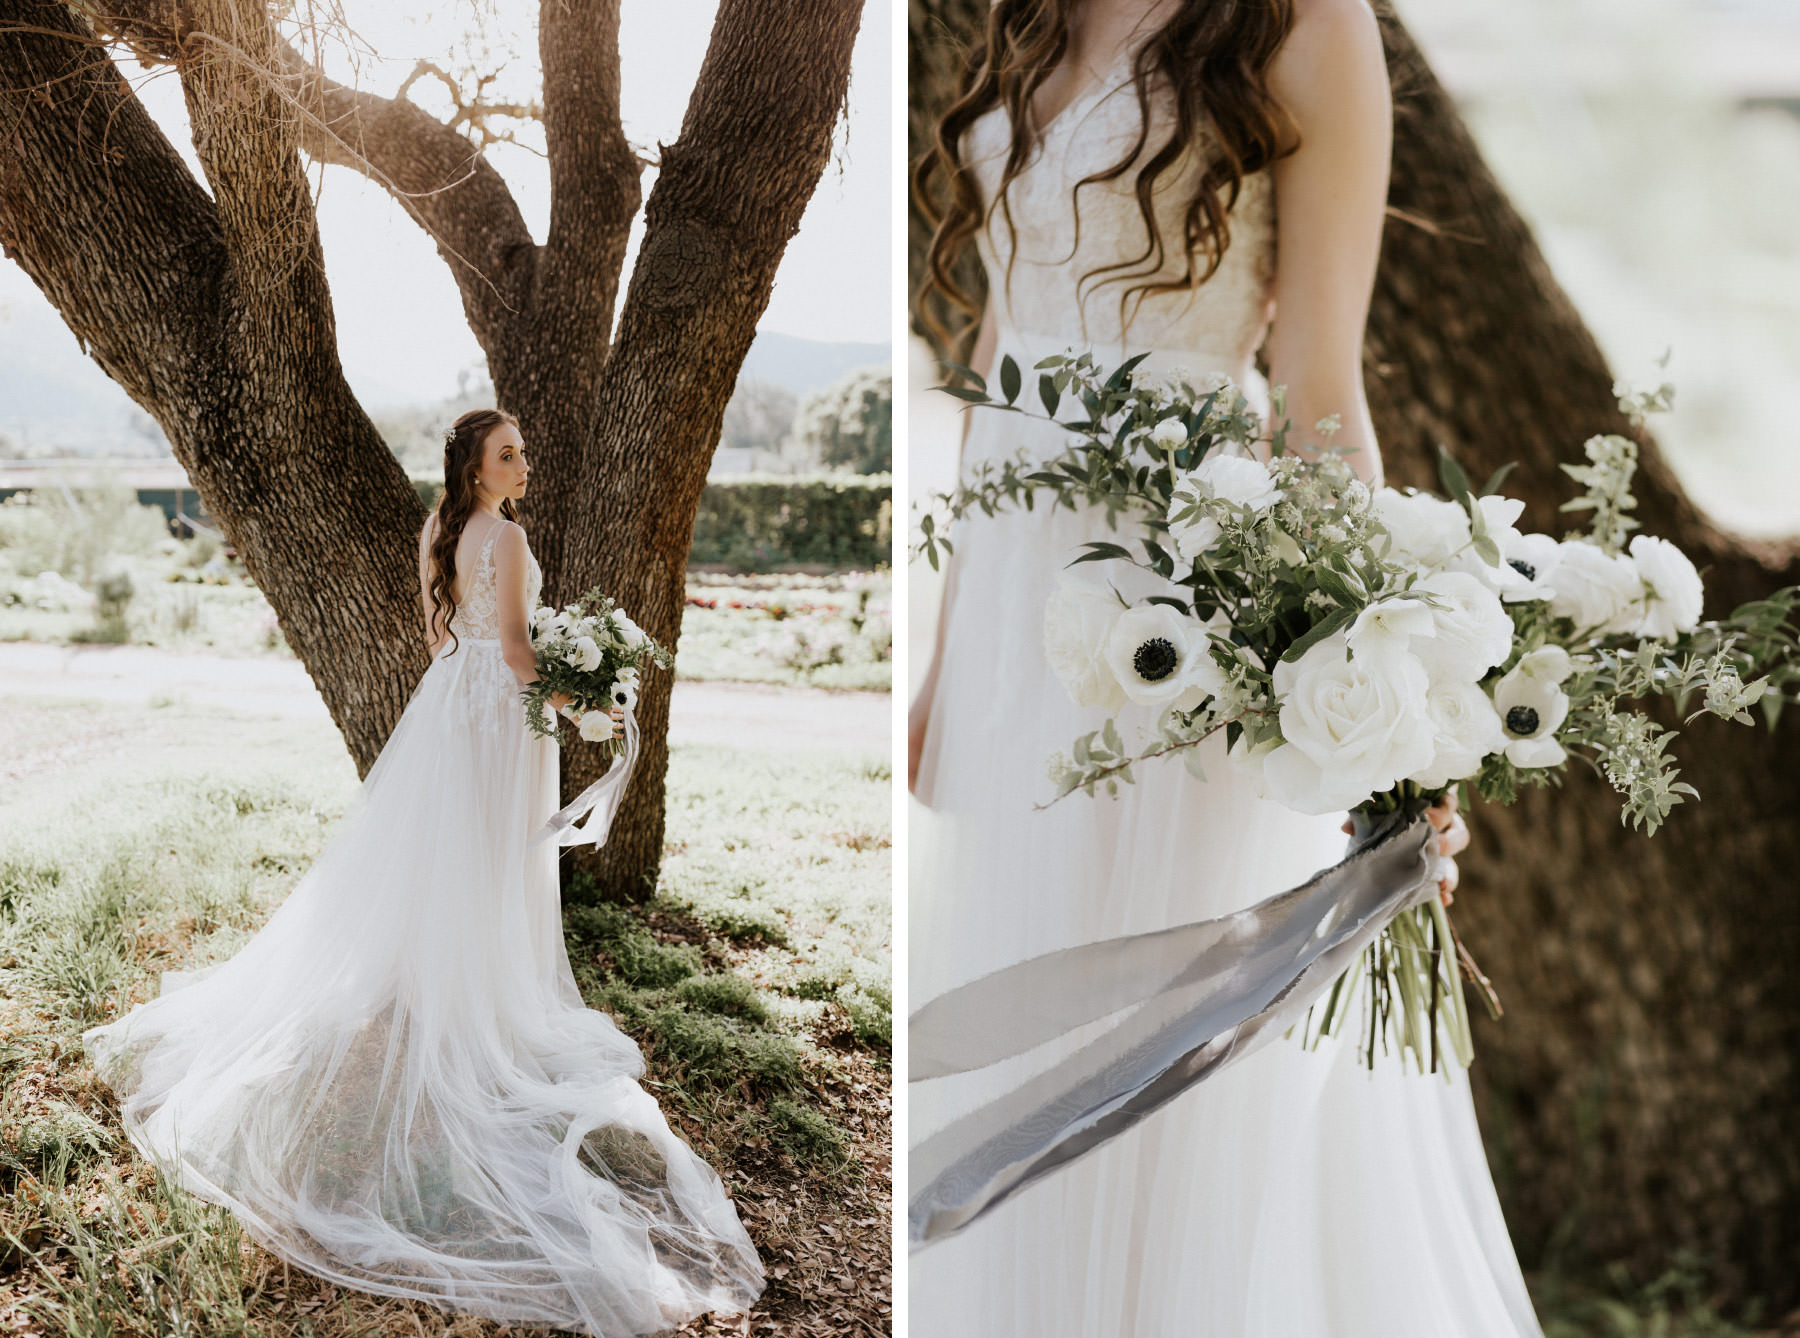 BHLDN dress with cascading bouquet of white roses and anemone flowers